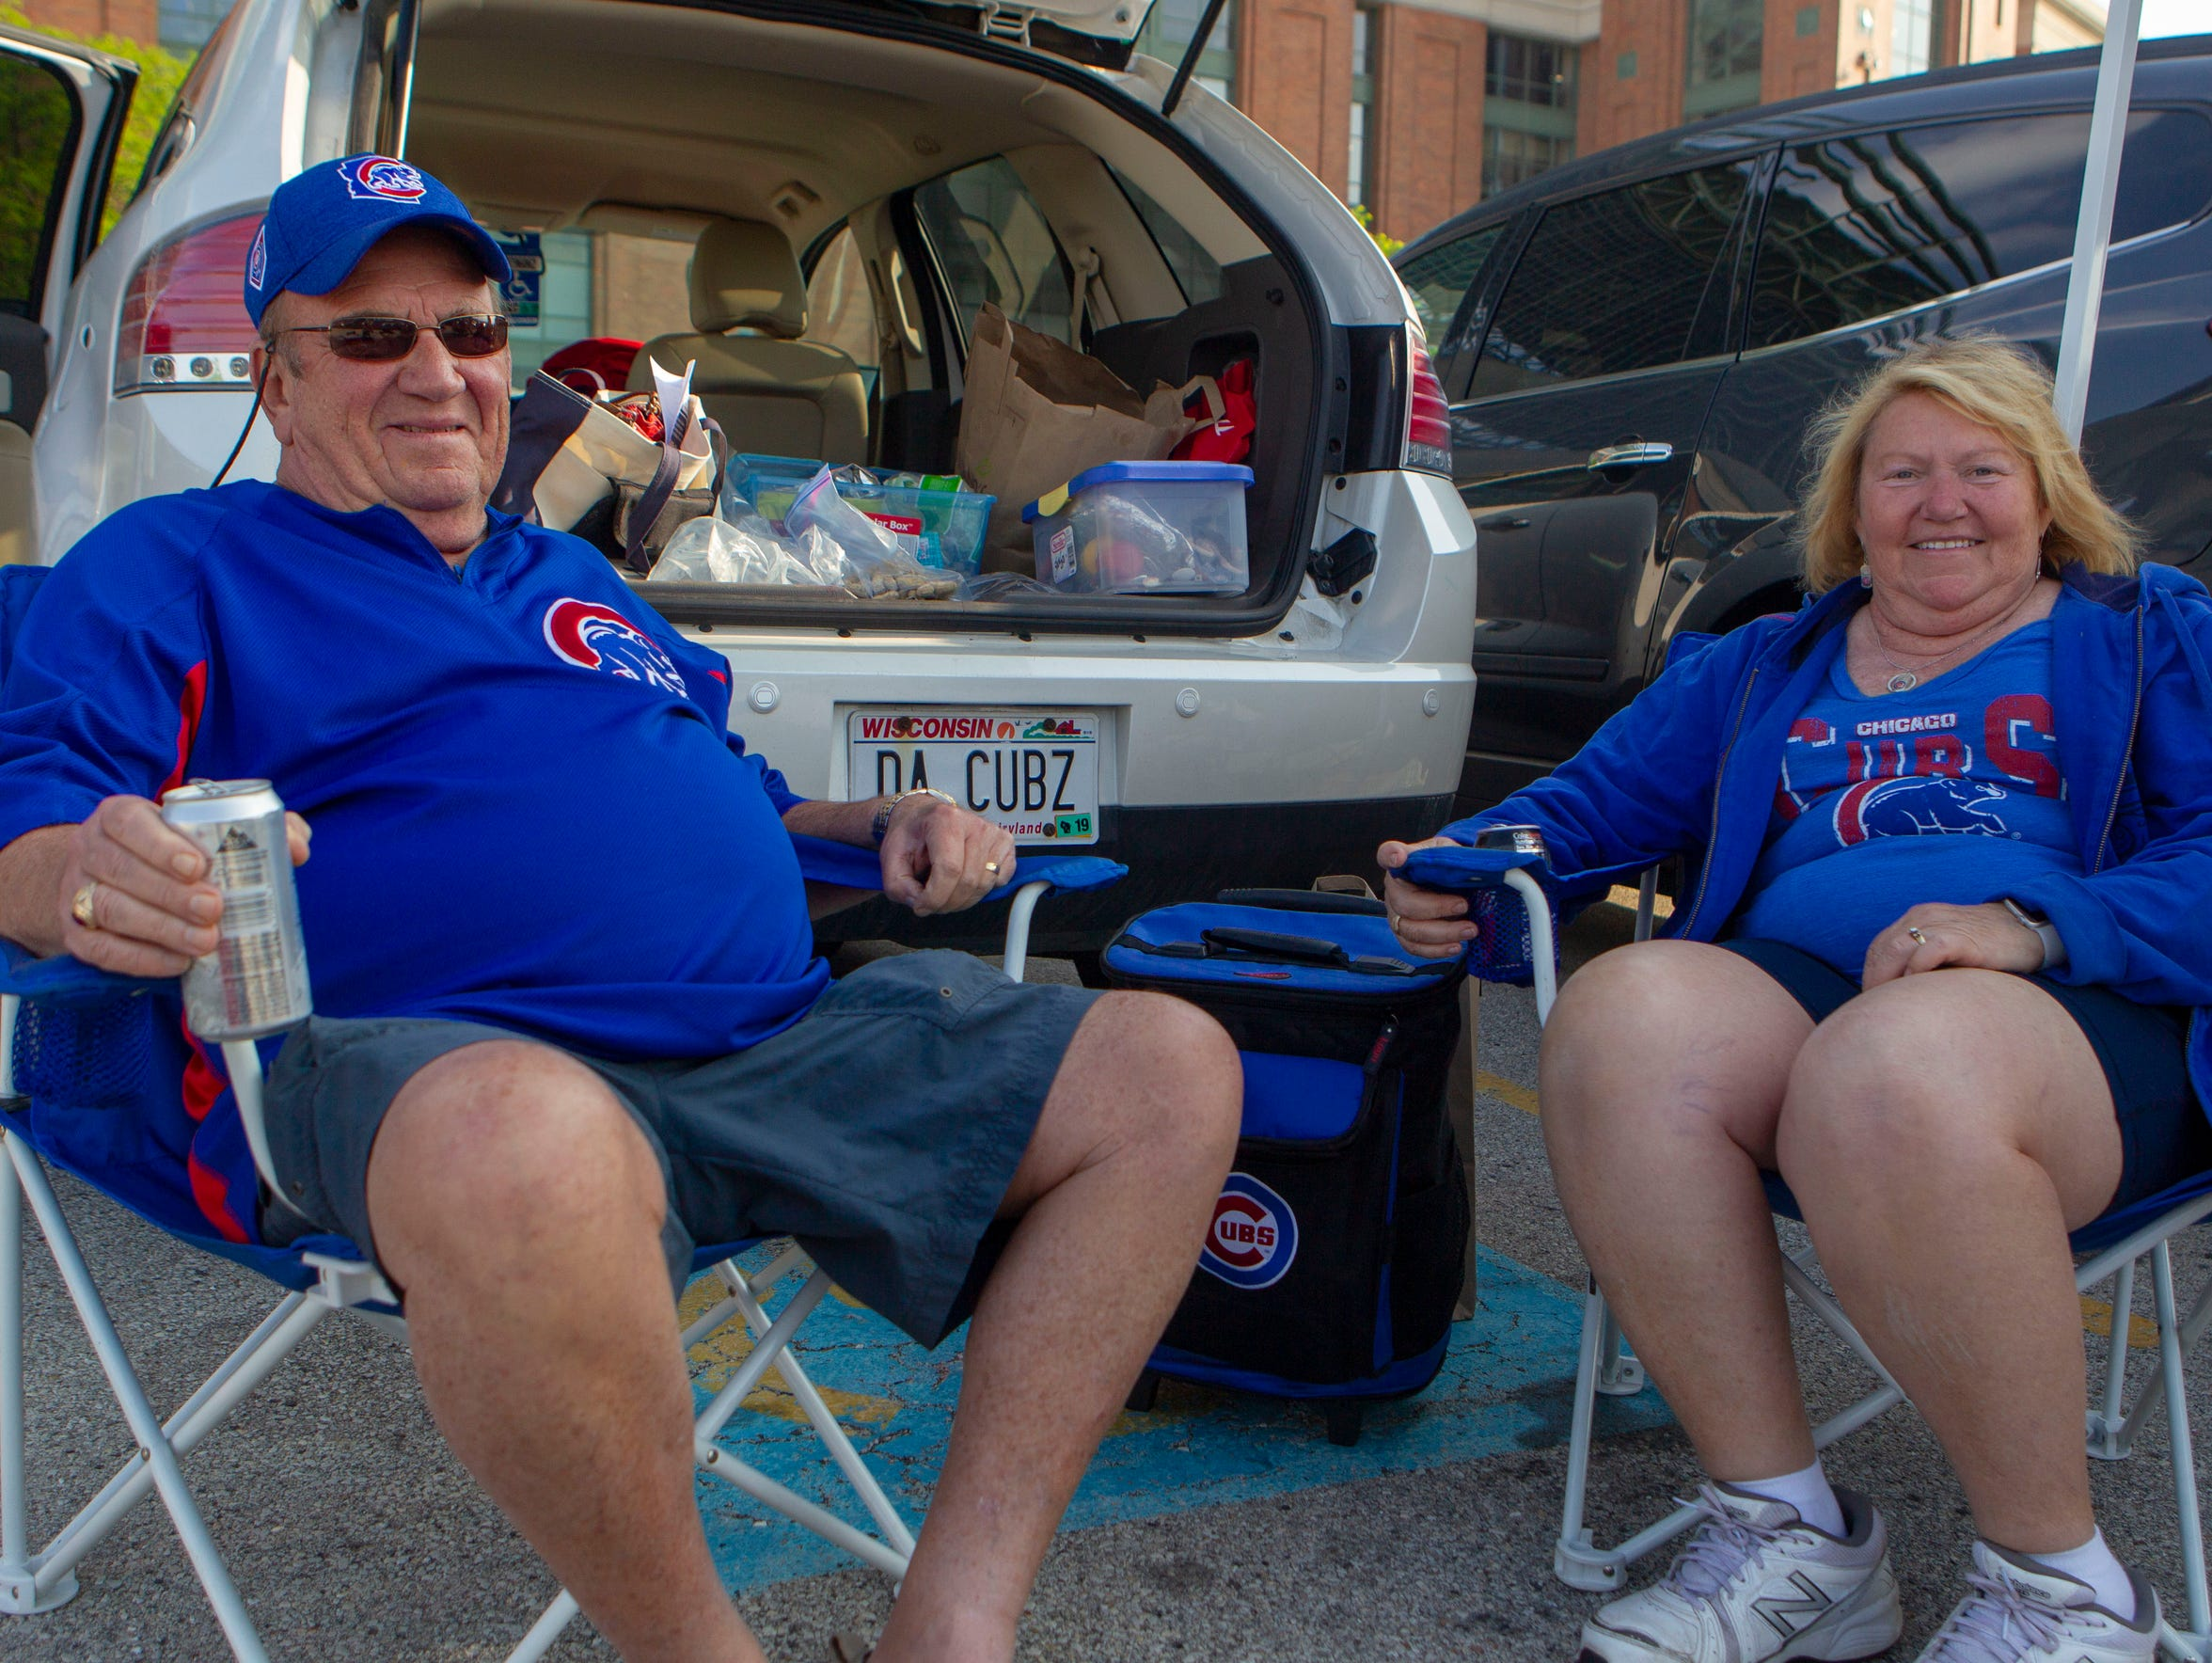 Dick and Lu Schmidt of Appleton pose during a tailgate